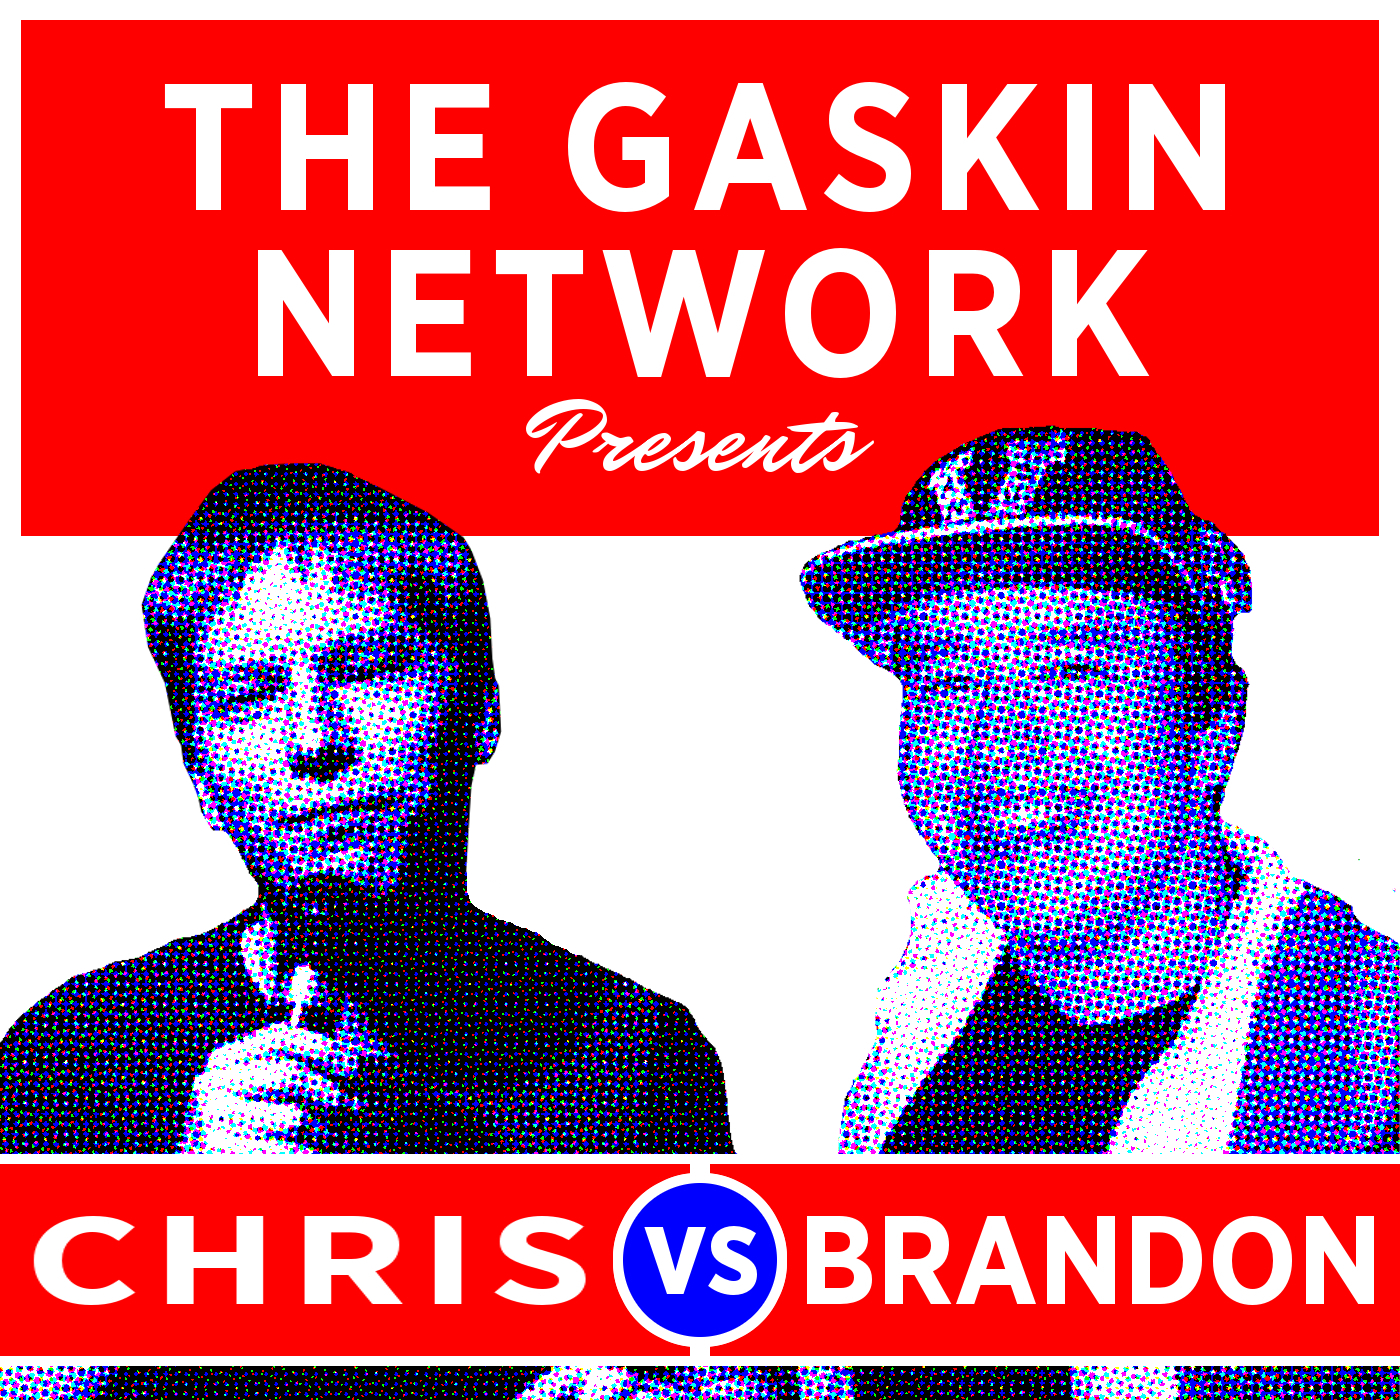 Chris vs Brandon